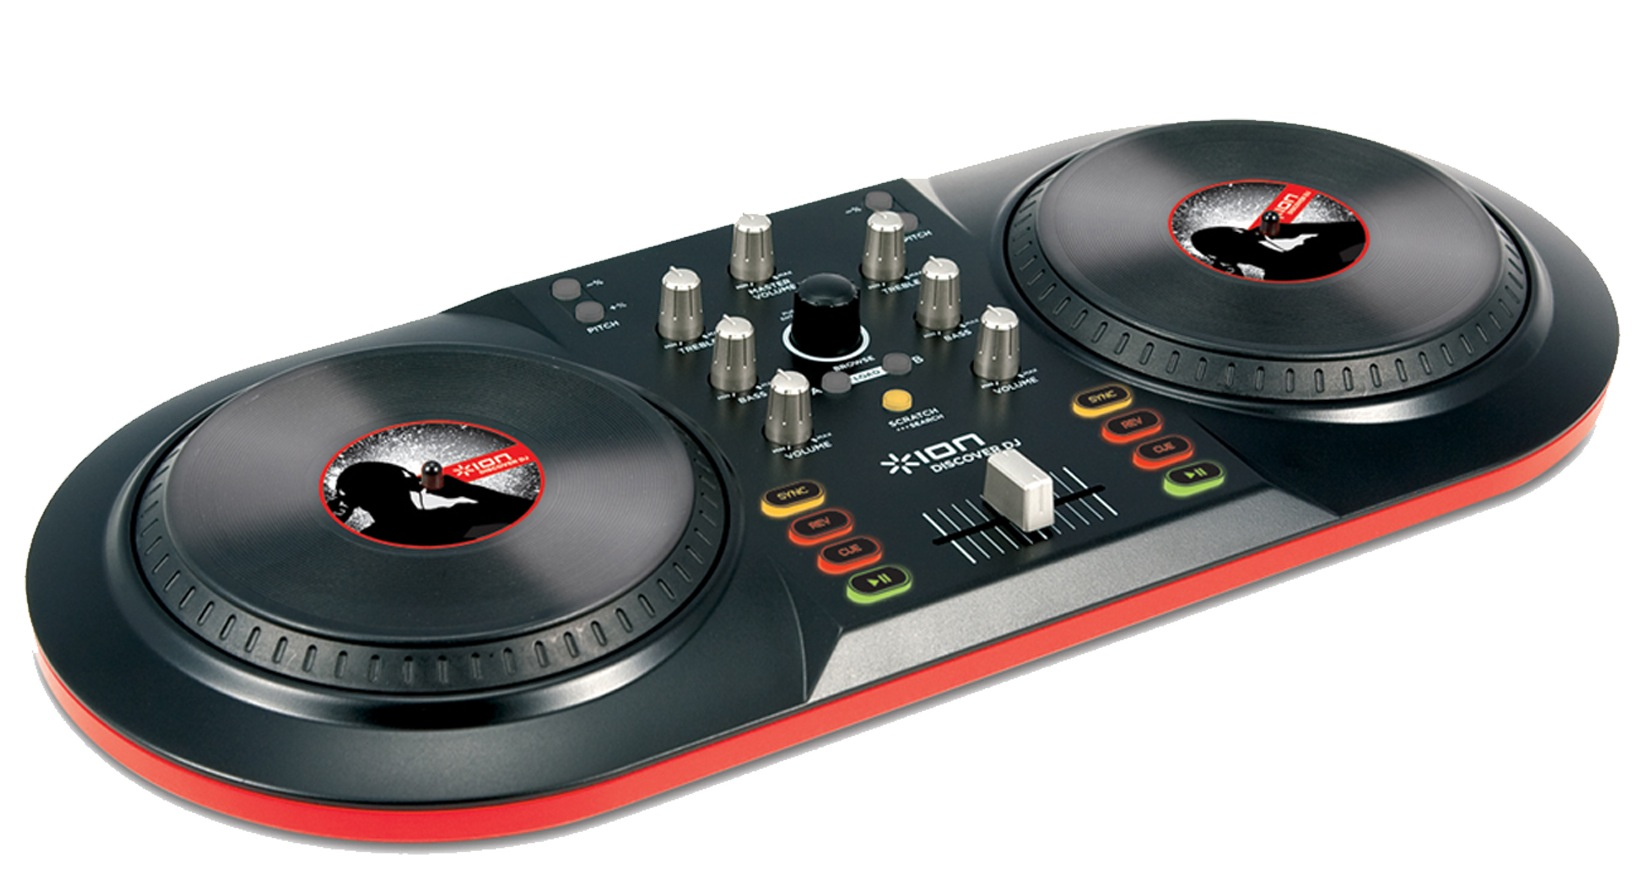 The ION Audio iCUE 3 controller is great fun for learning the basics of DJing.